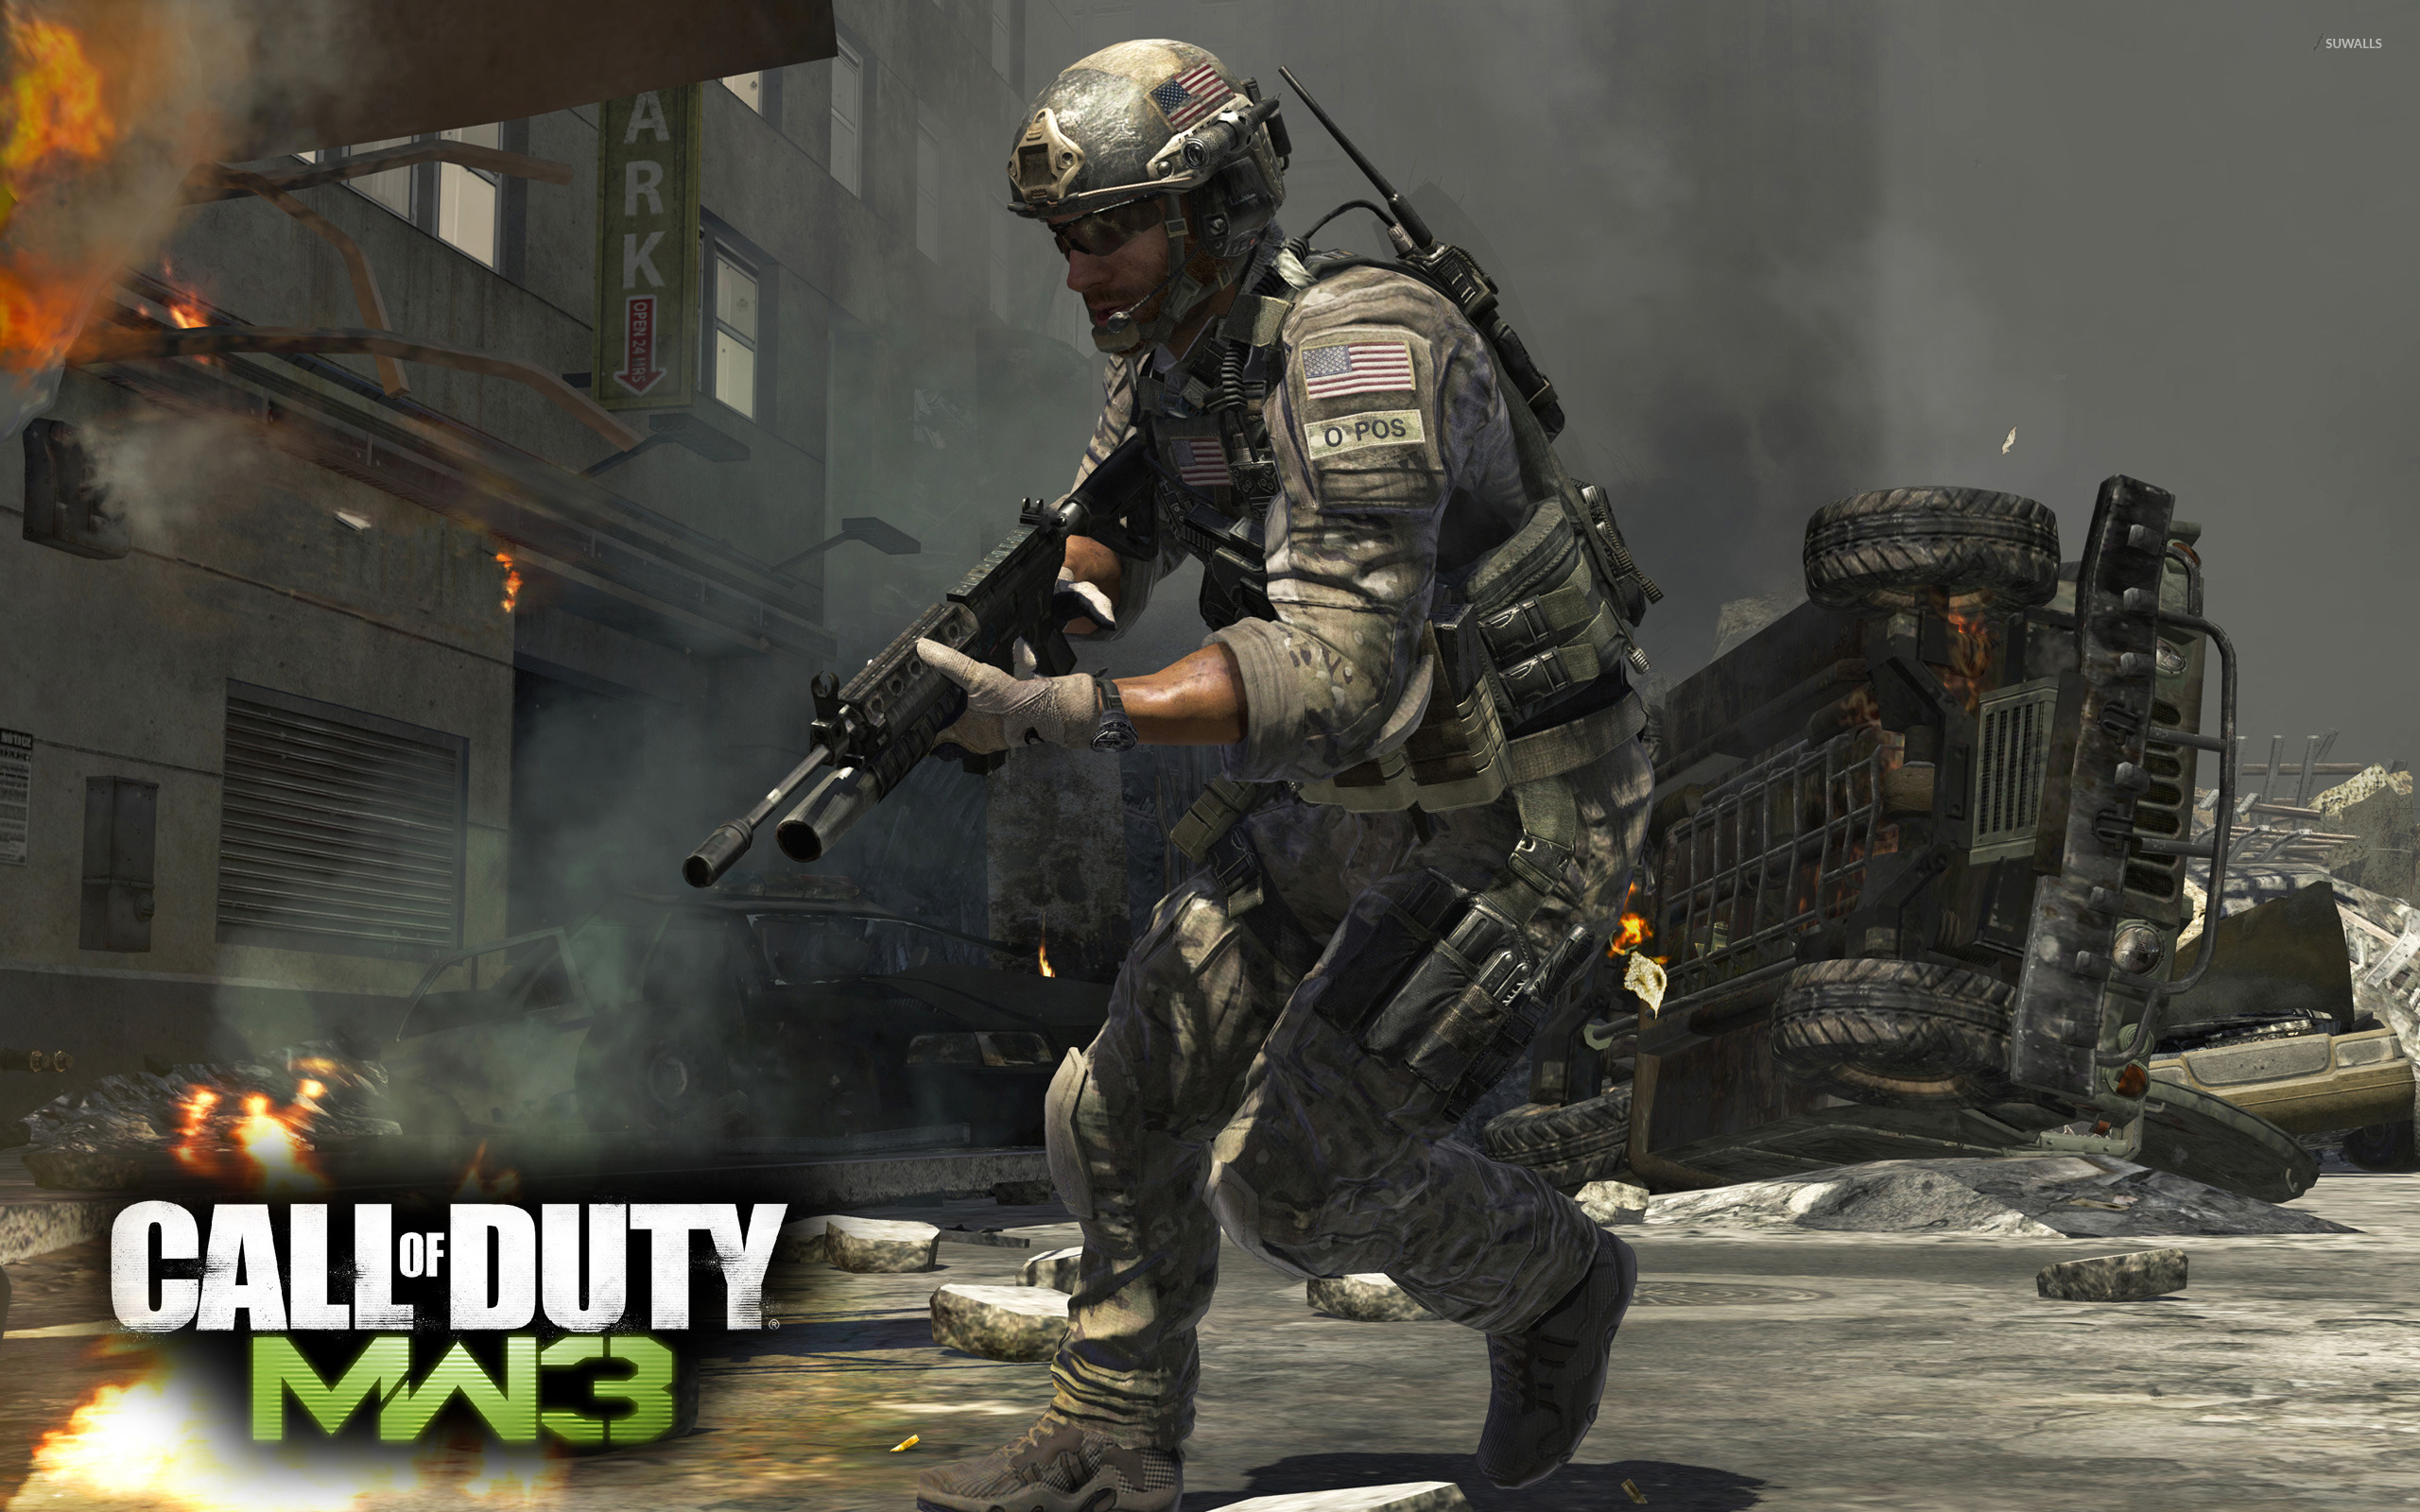 Call Of Duty Modern Warfare 3 4 Wallpaper Game Wallpapers